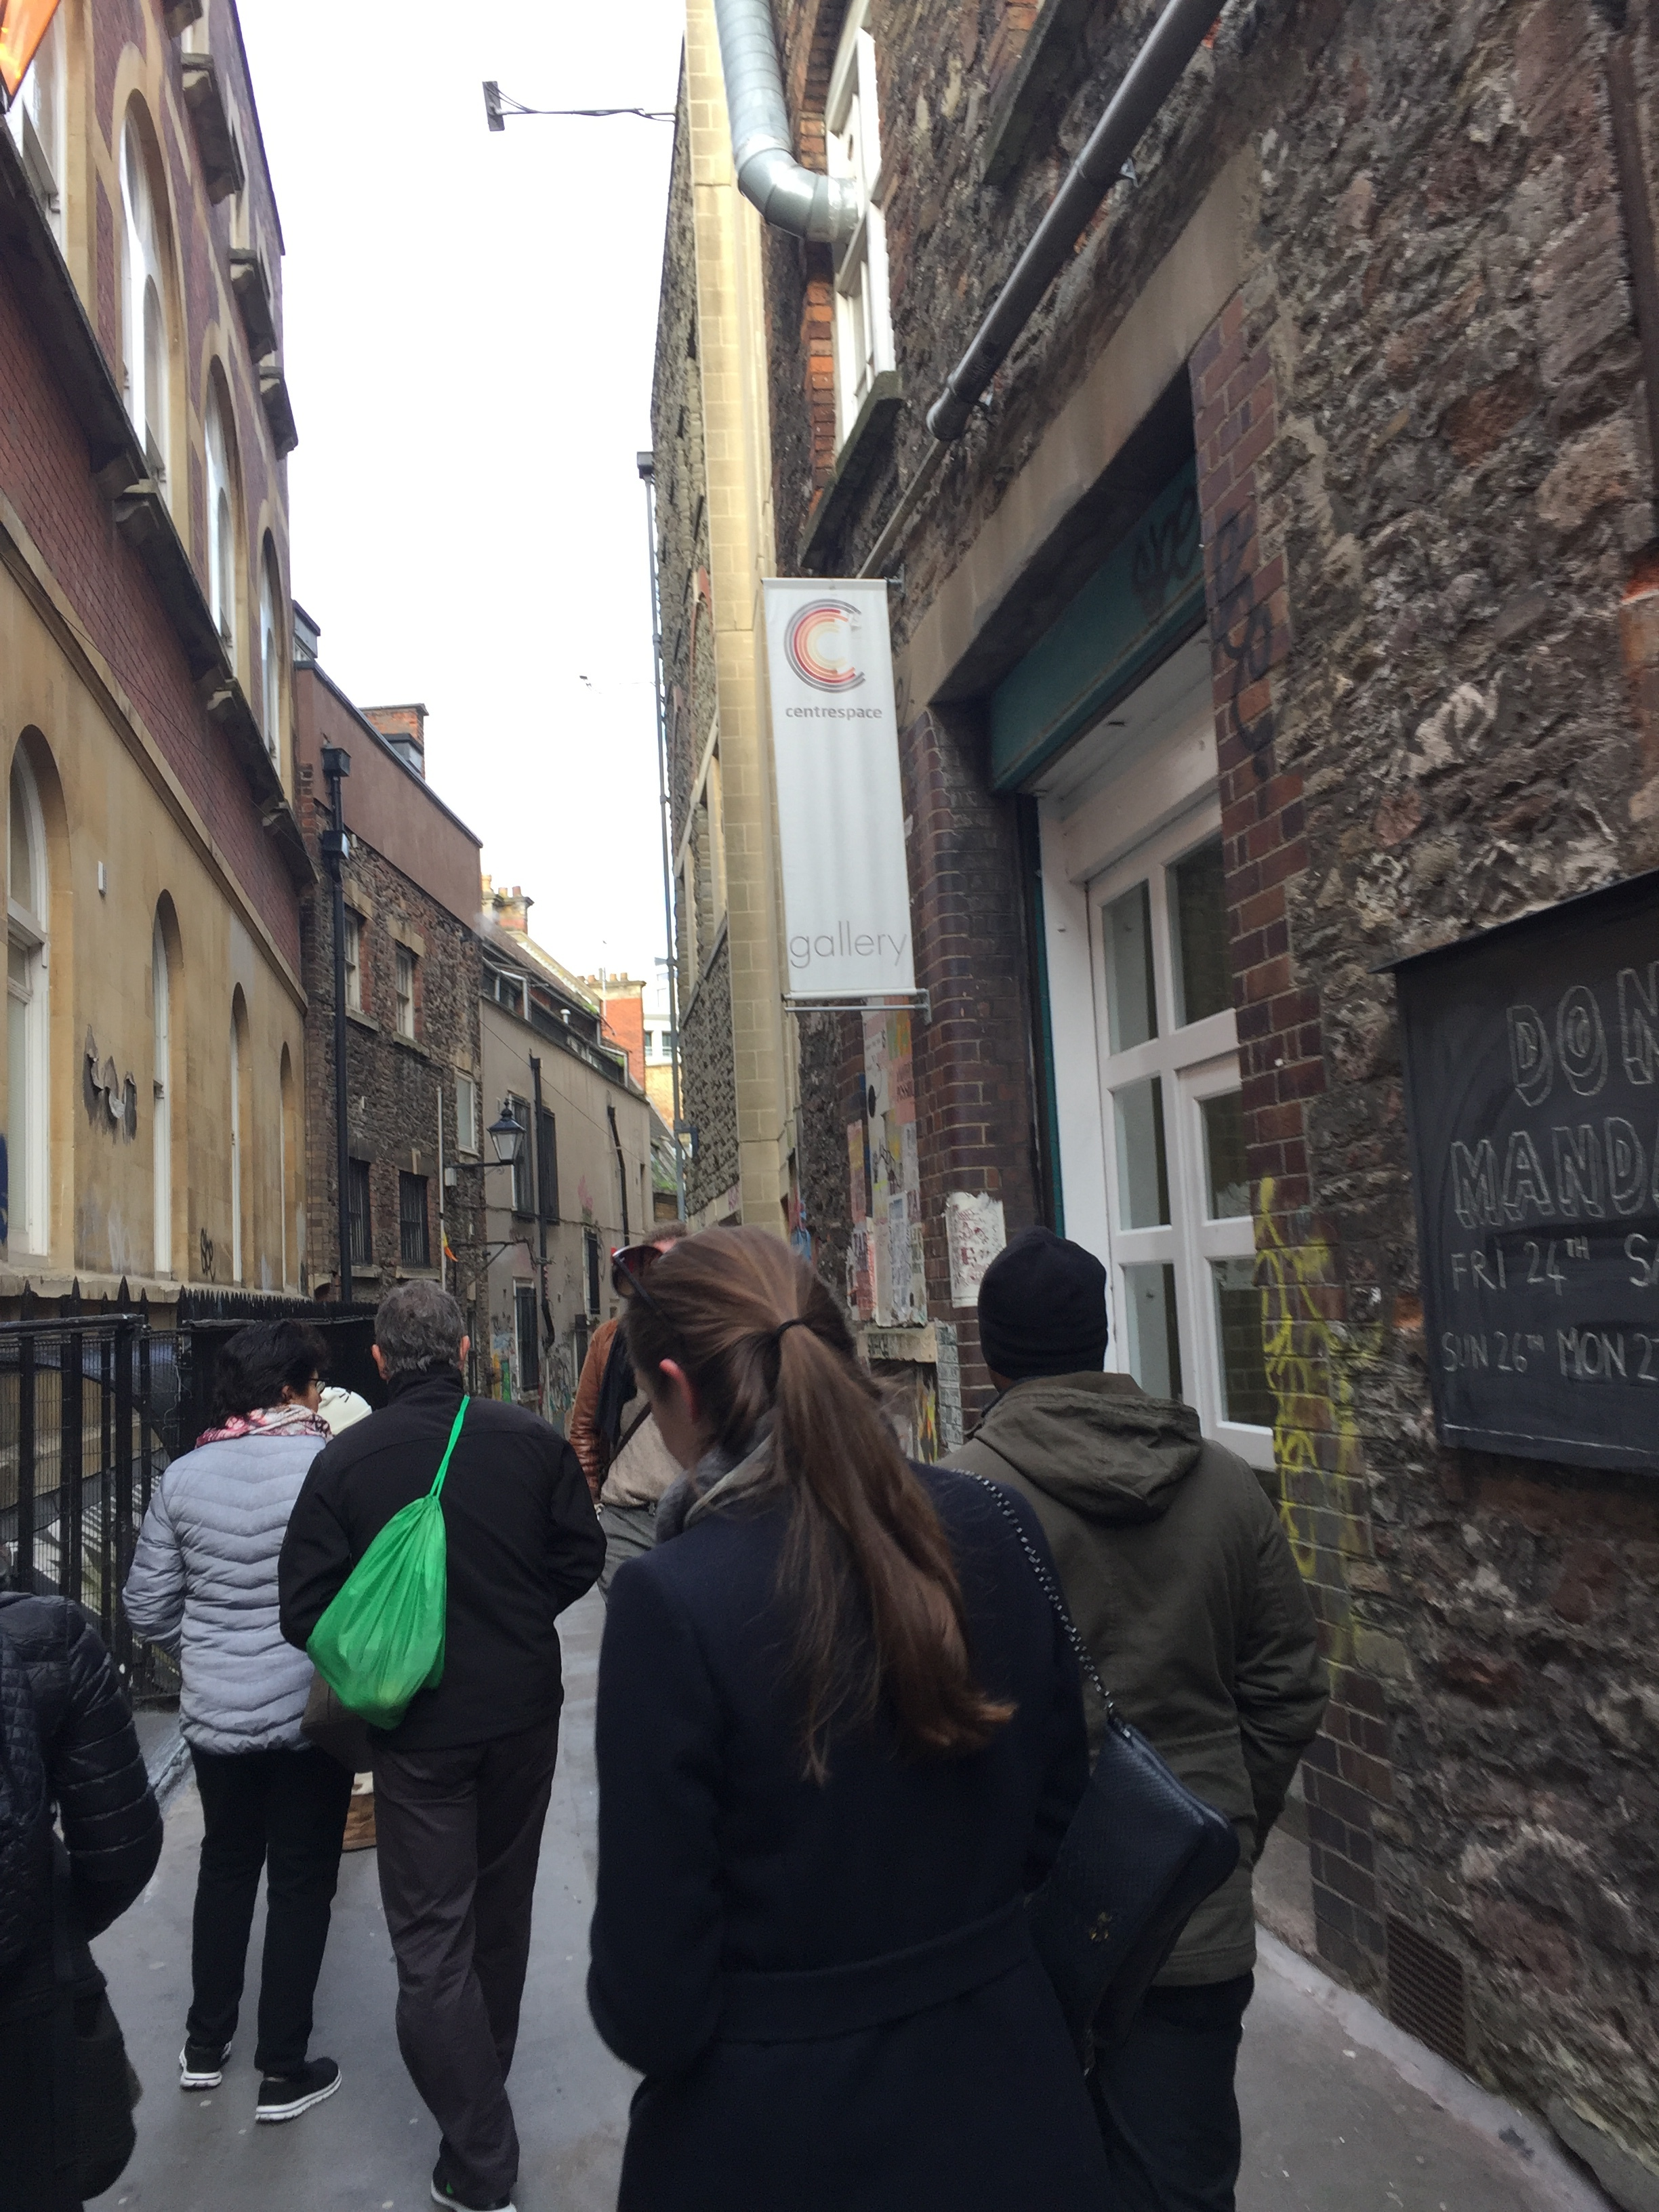 Walking down a 1,000-year-old street